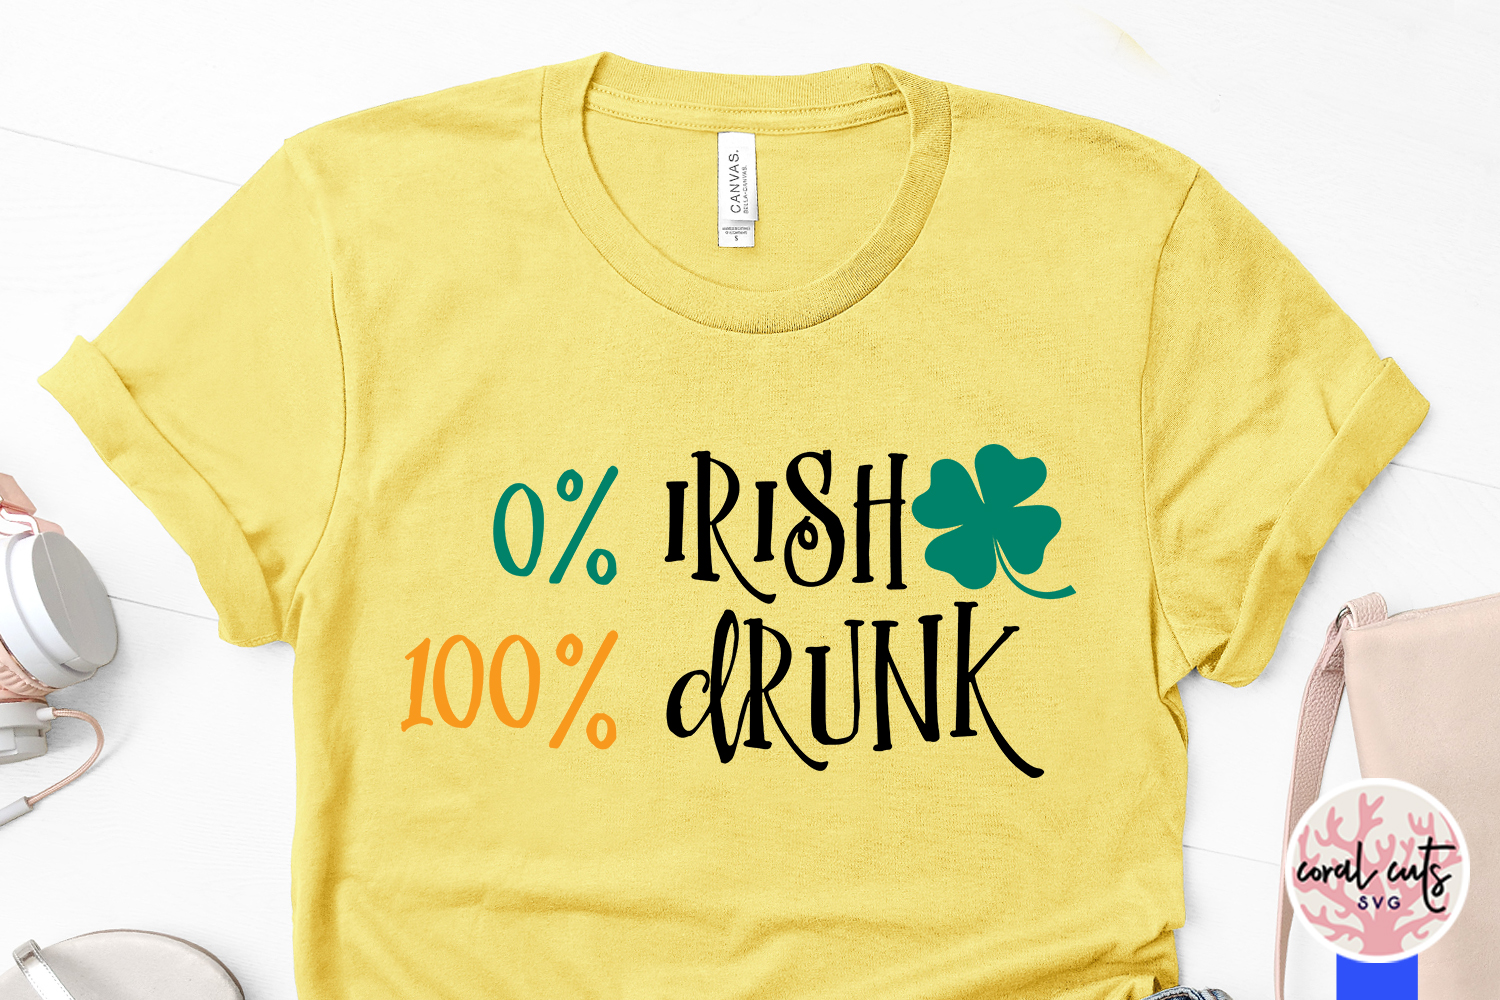 0 irish 100 drunk - St. Patrick's Day SVG EPS DXF PNG example image 3